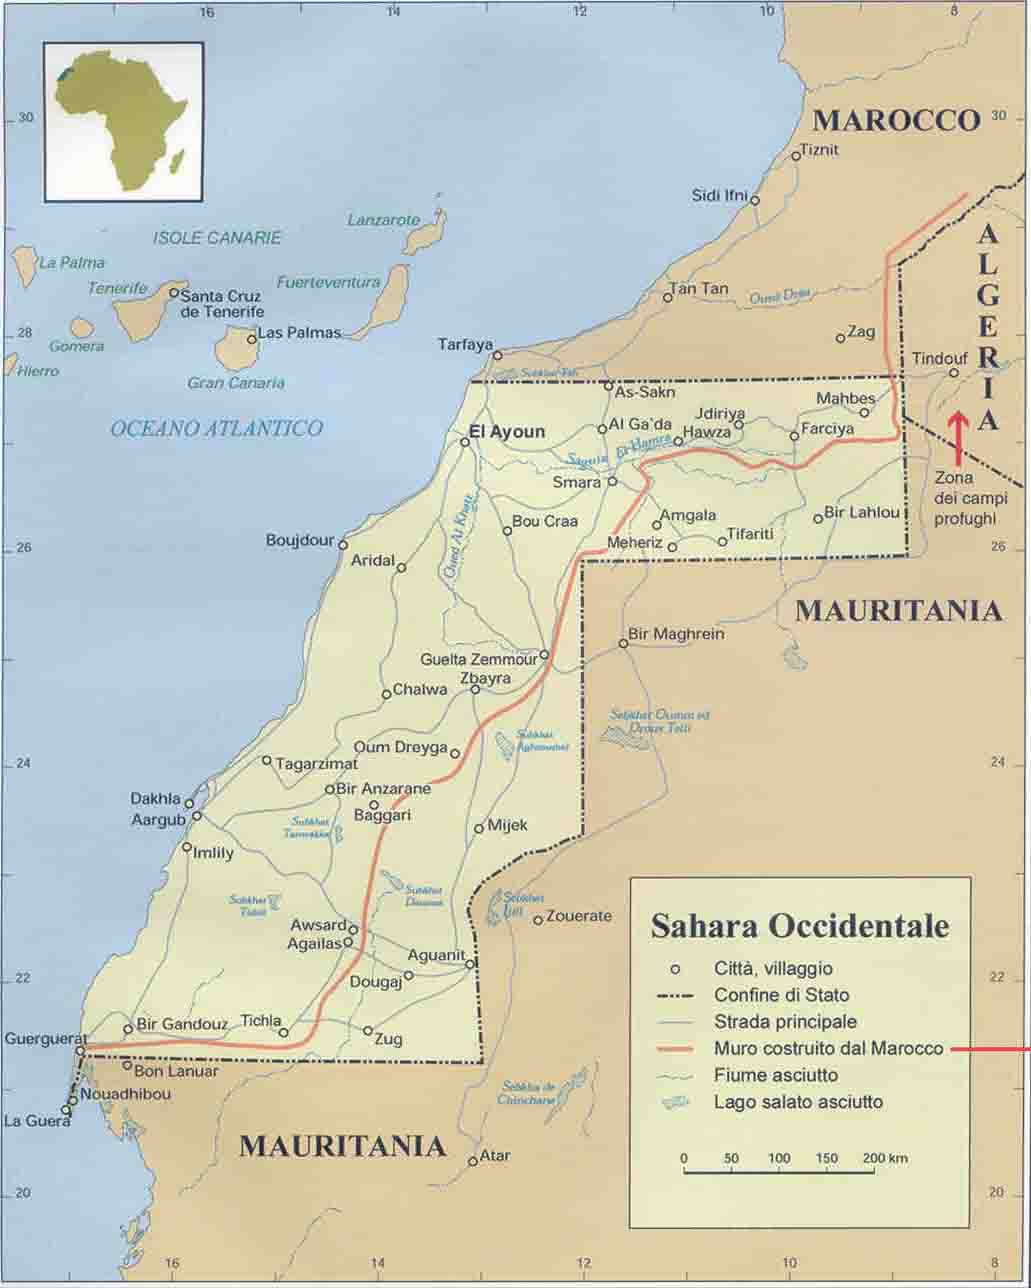 Sahara Occidentale